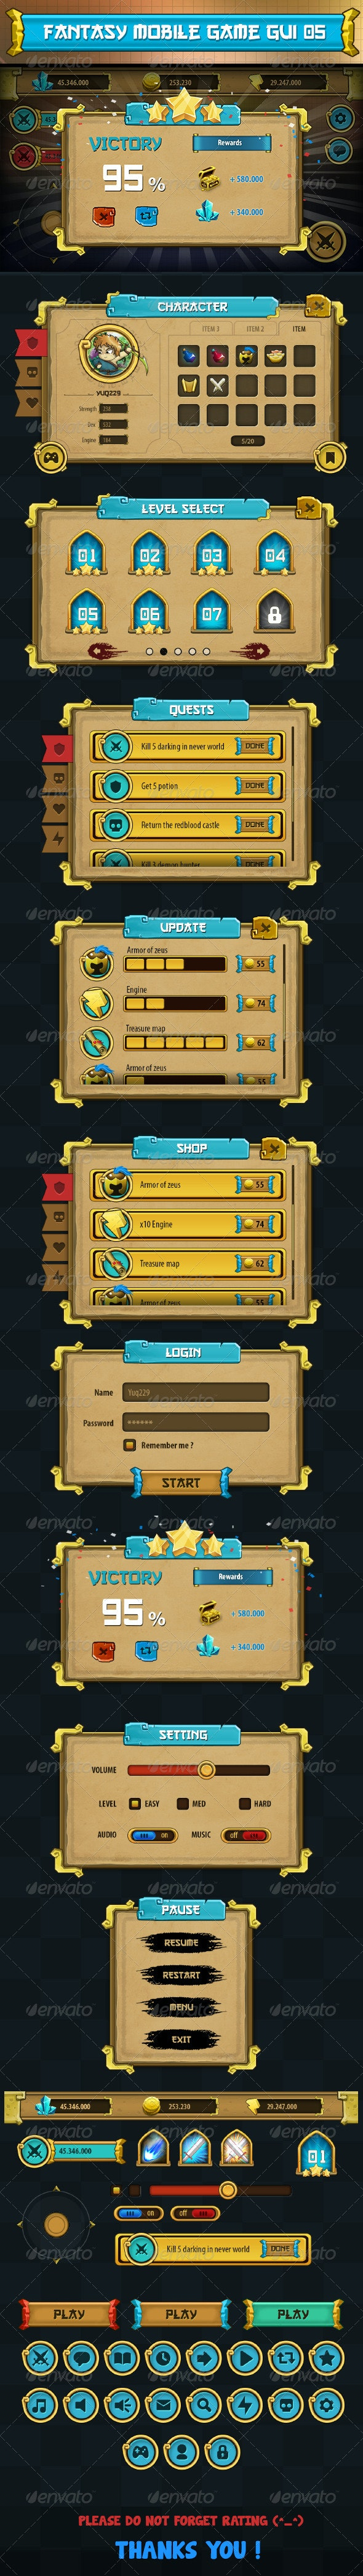 Fantasy Mobile Game Gui Pack 05 - User Interfaces Web Elements